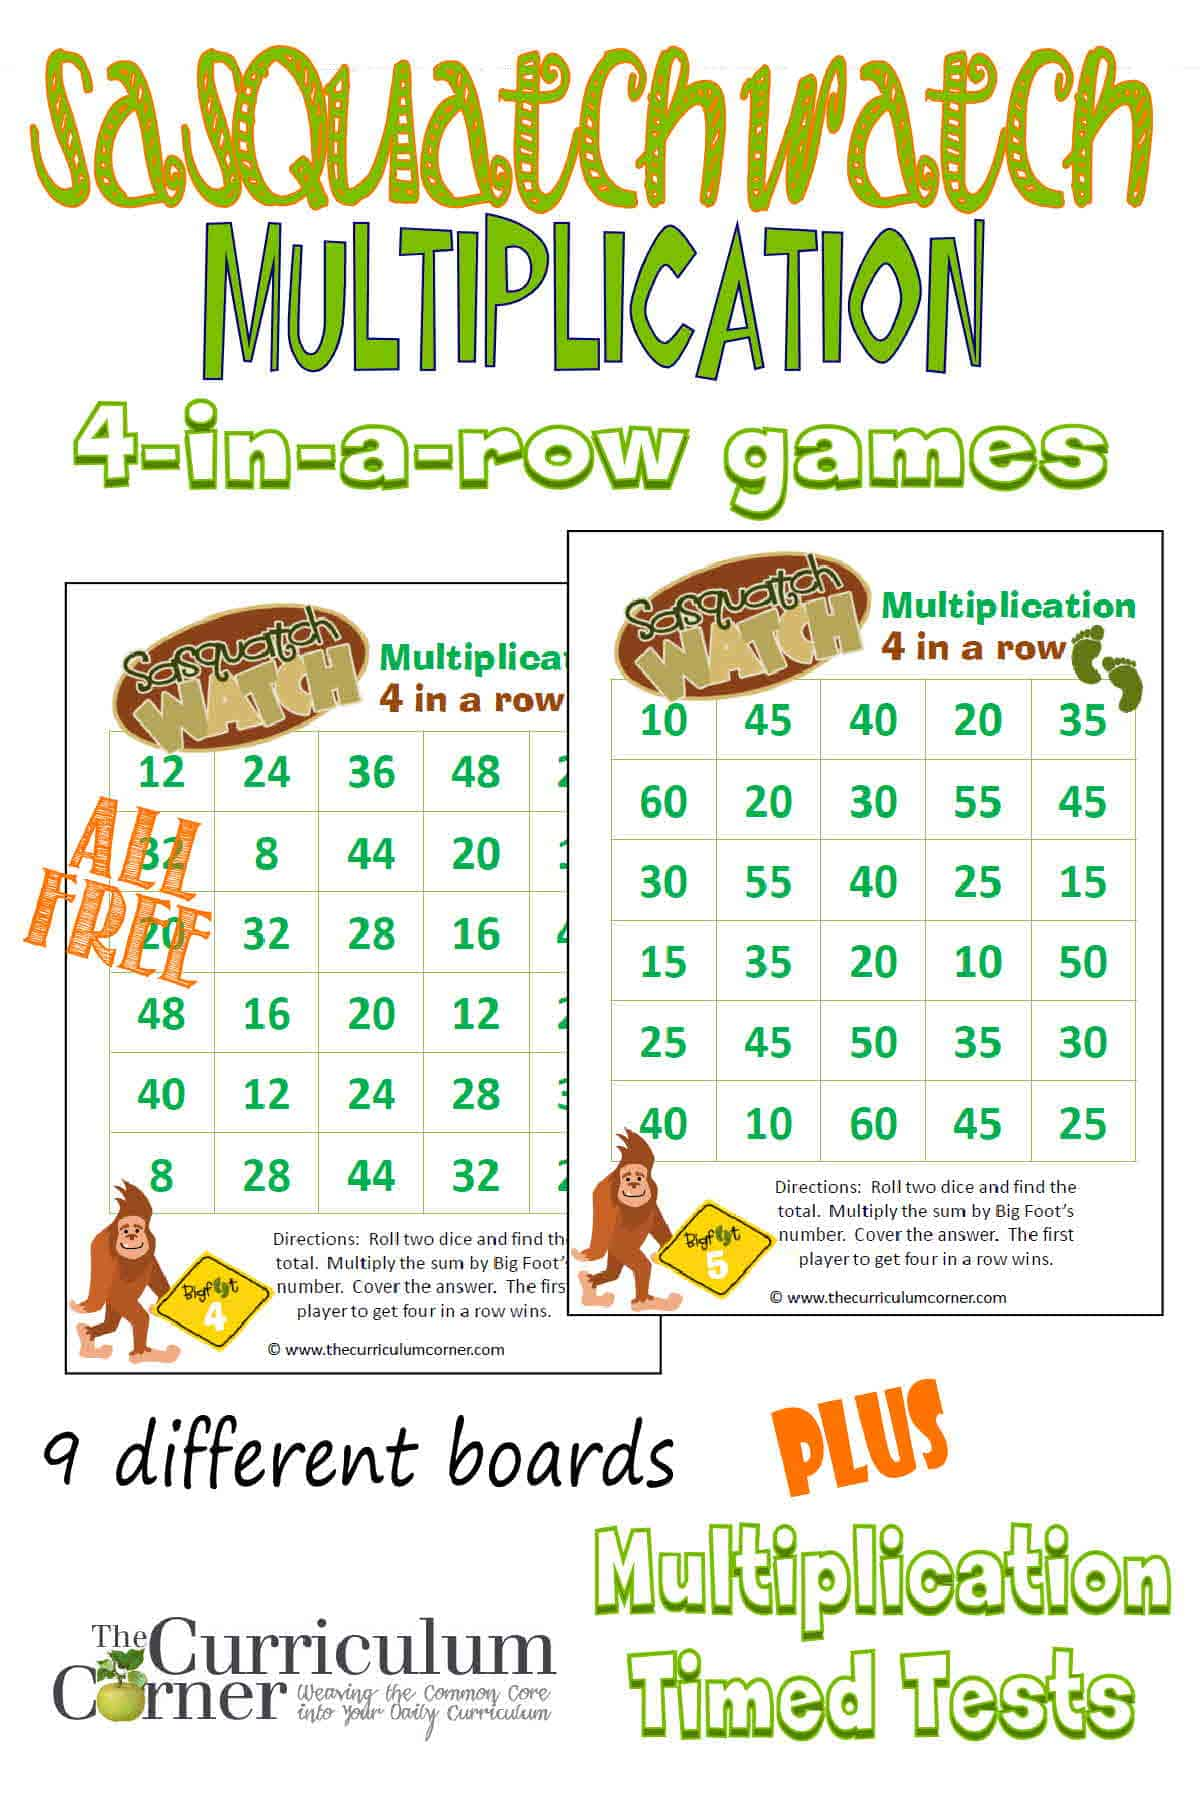 worksheet Multiplication Facts strategies to help students master multiplication facts the free big foot themed games from curriculum corner plus basic with multiplication